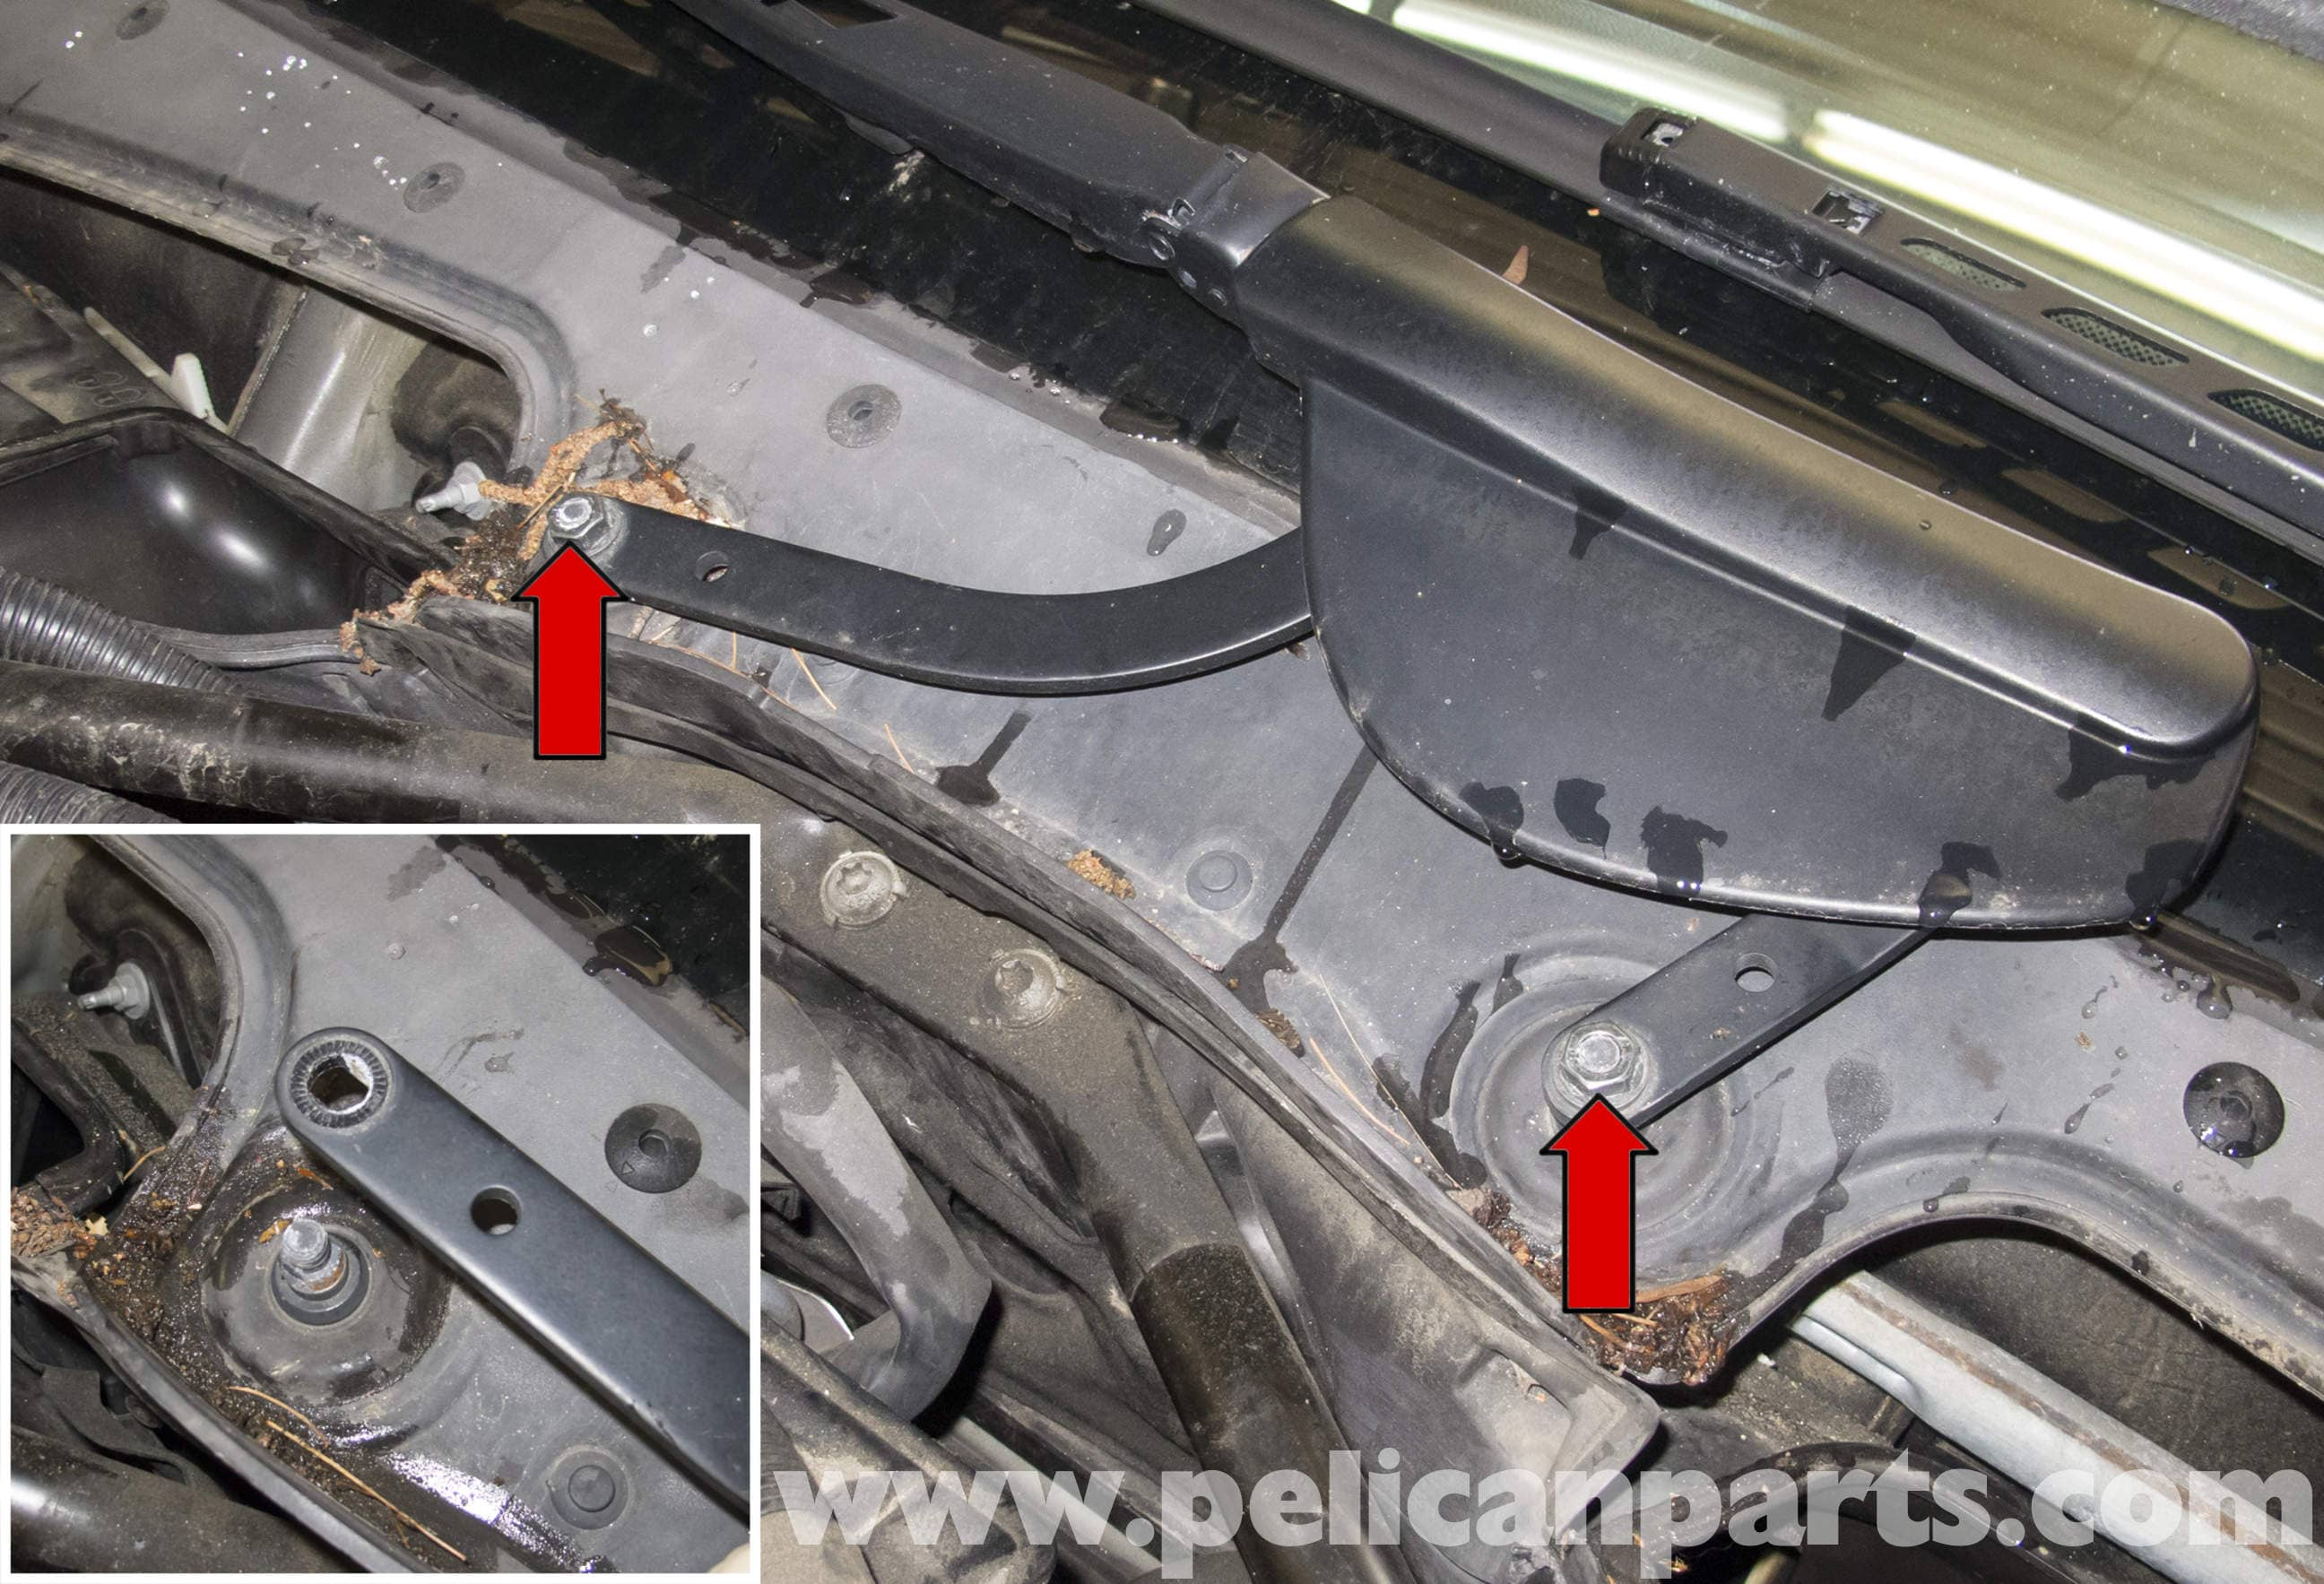 Battery Terminal Covers >> BMW E60 5-Series Wiper Motor Replacement (2003-2010) - Pelican Parts Technical Article